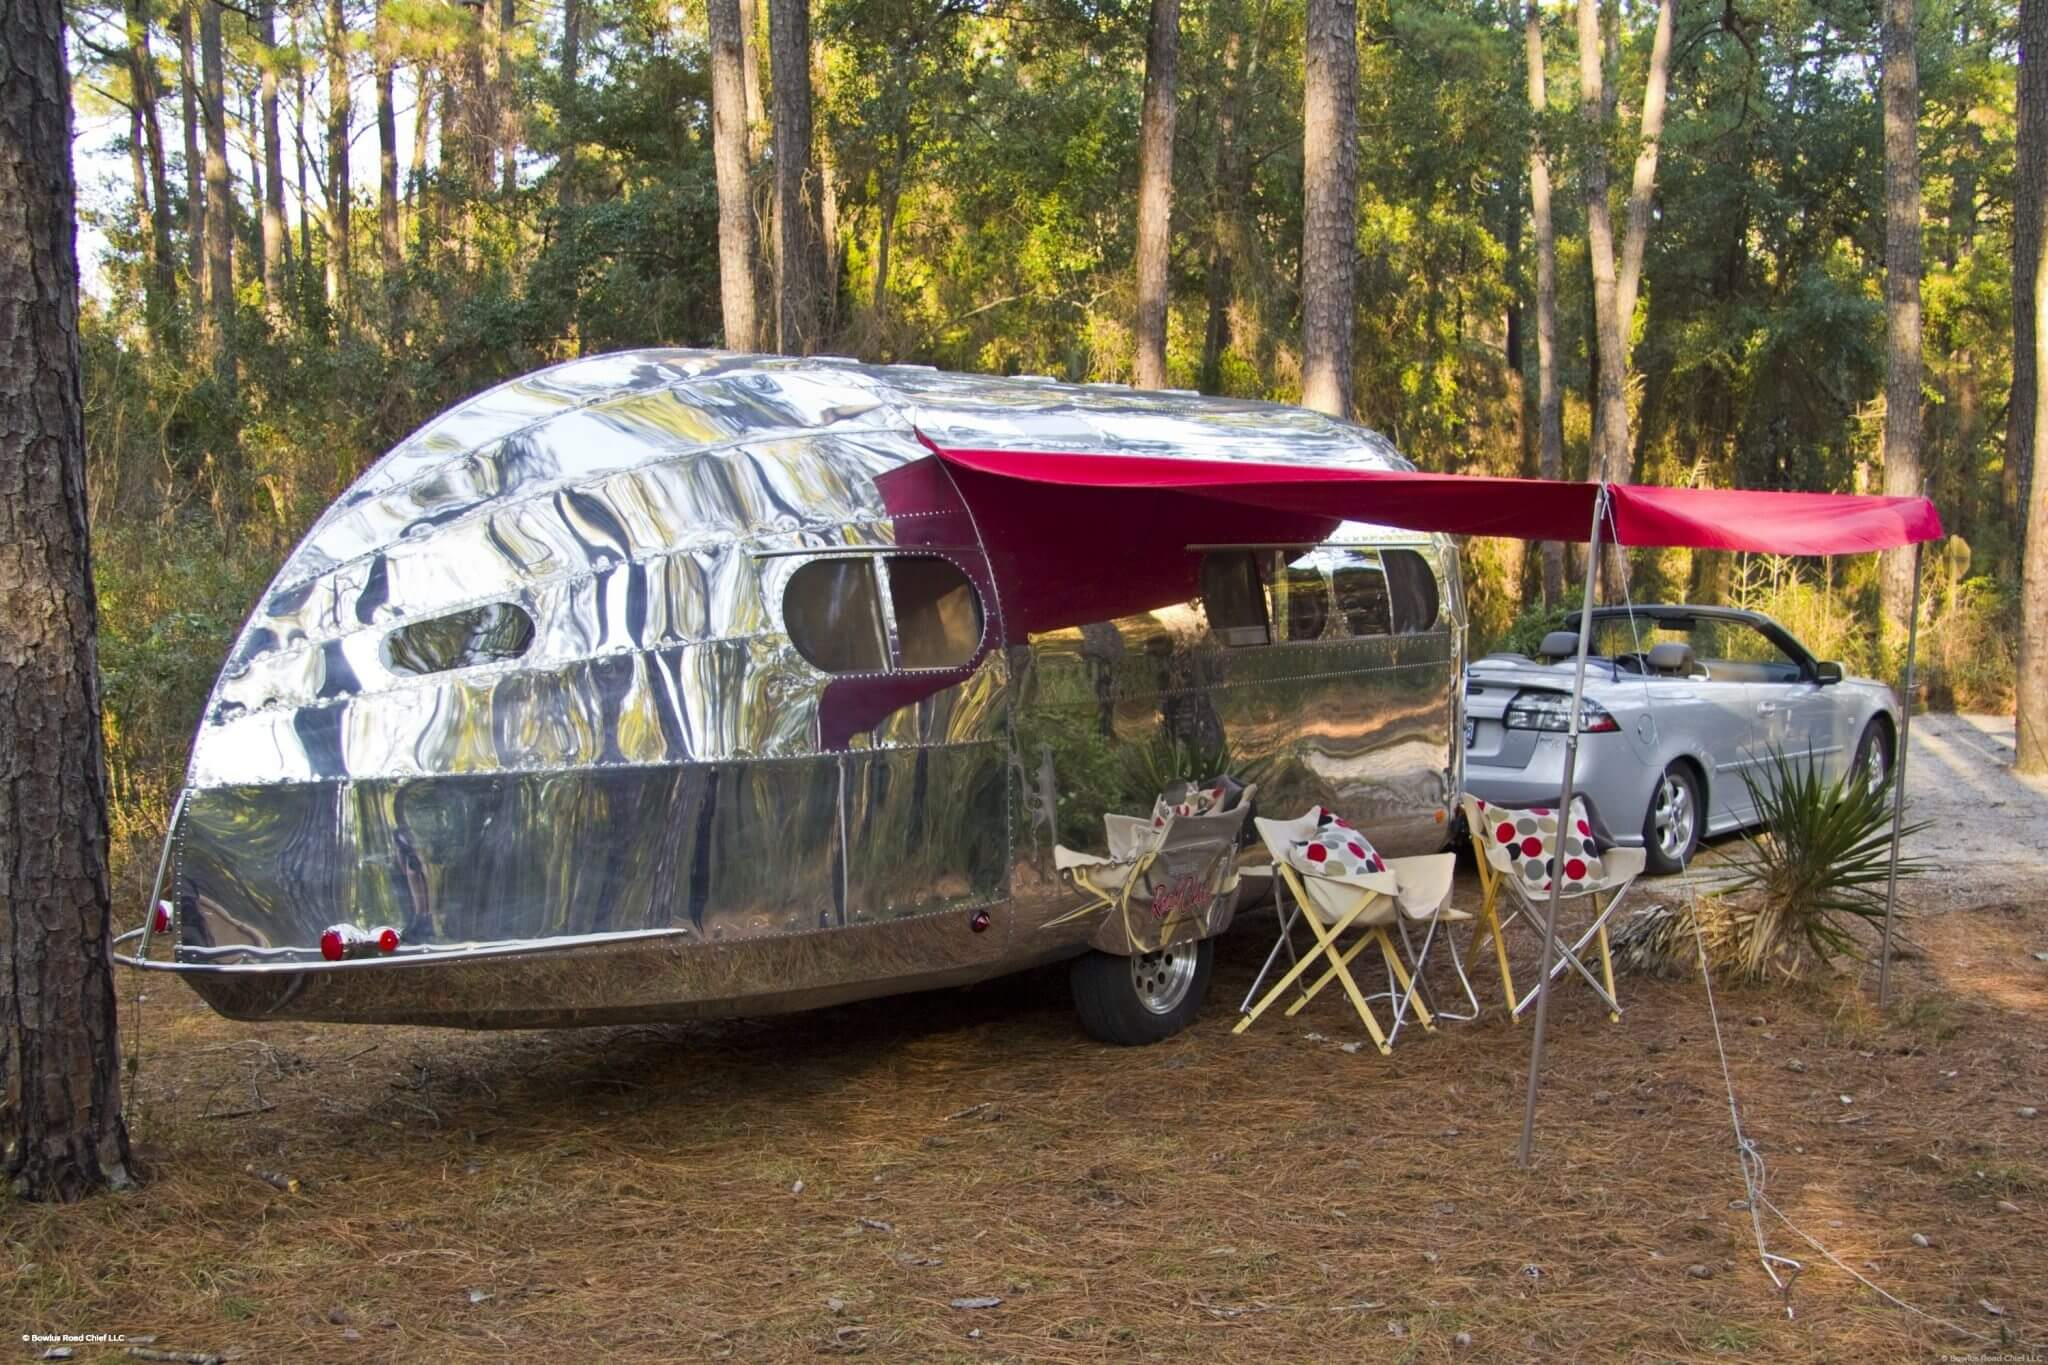 What Should You Consider When Buying an RV?